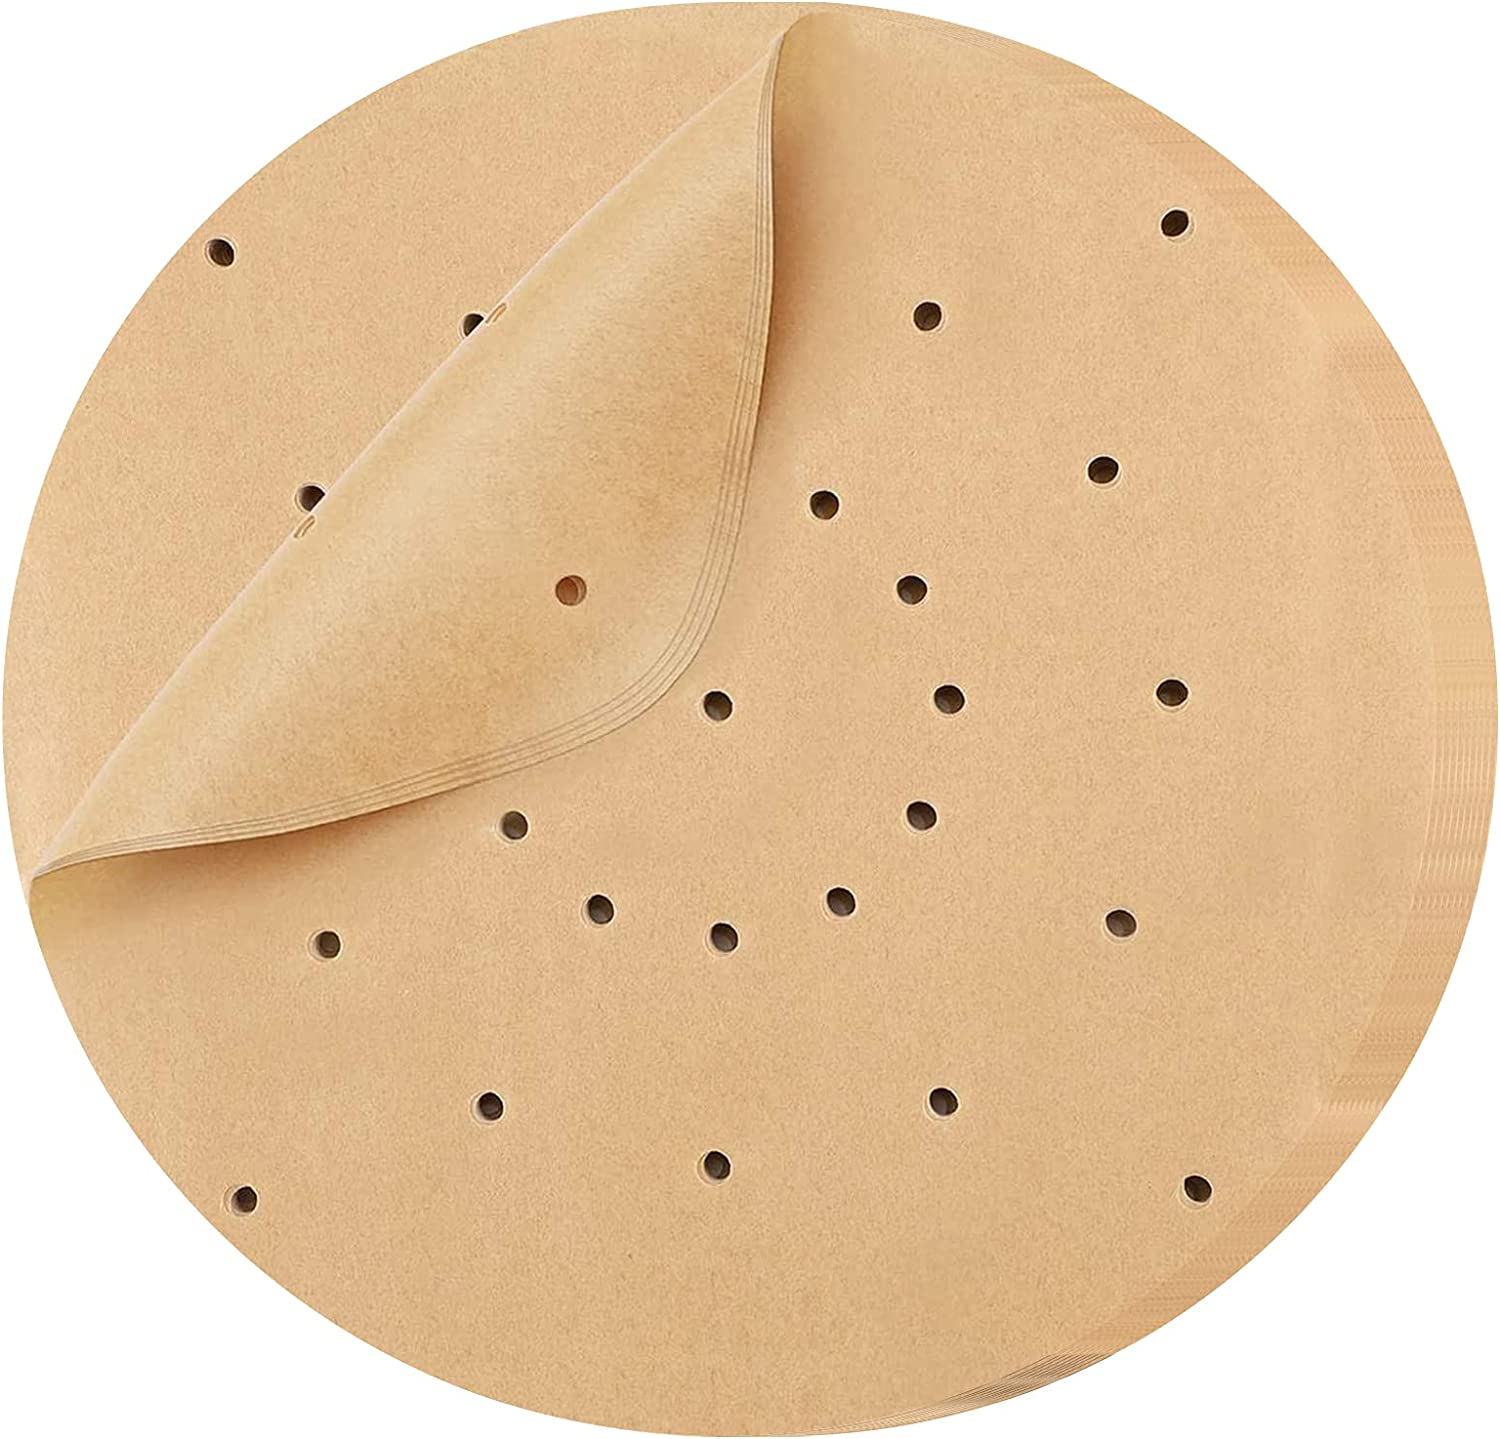 Air Fryer Parchment Paper 200 Pcs - HAANEW 8.5 inch Round Air Fryer Liners/Steaming Parchment Liner/Perforated Parchment for Air Fryer, Steaming Basket and More (8.5-round, Unbleached)